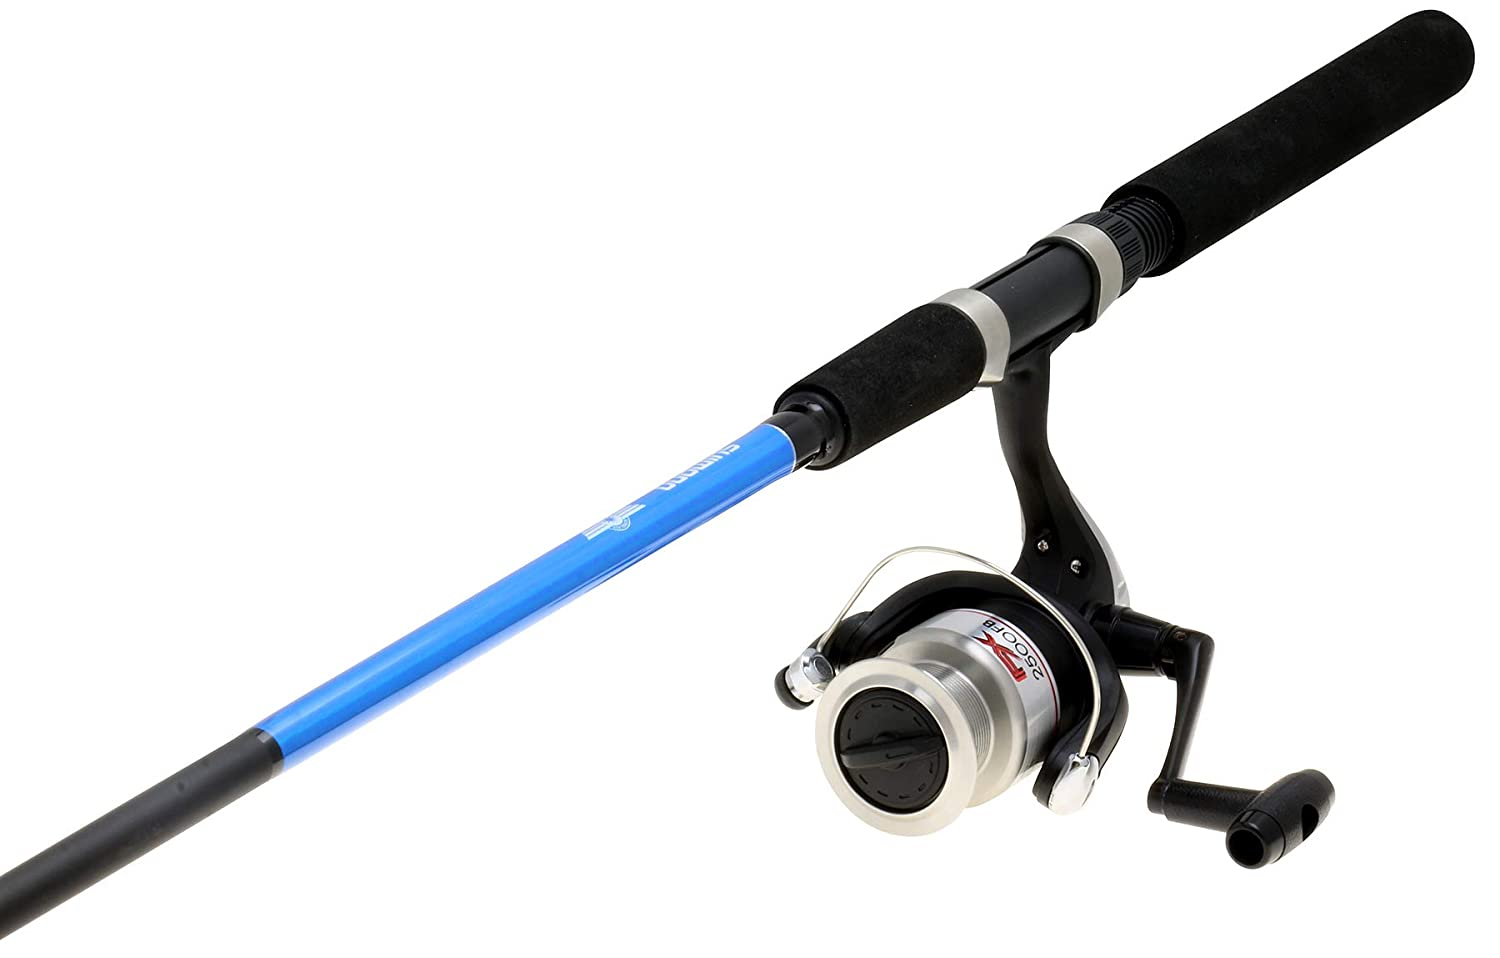 RITE-HITE Bank Fishing Dual-Rod Holder – Holds Two Fishing Rods and Reels at The Optimum Angle. Great for Bank Fishing on Lakes and Streams